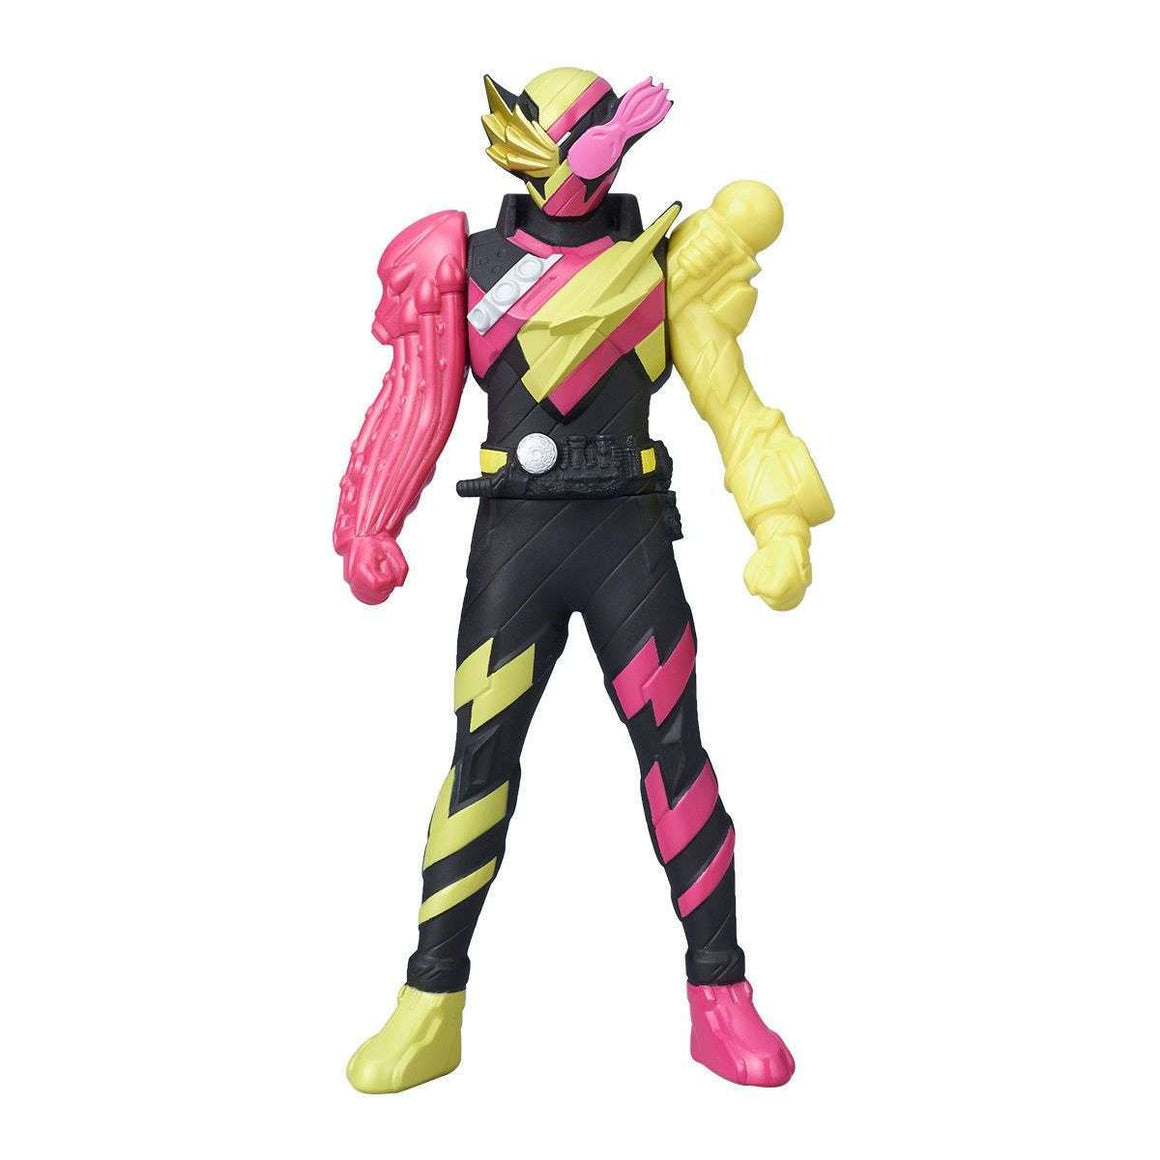 CSTOYS INTERNATIONAL:Kamen Rider Build: RHS13 Kamen Rider Build OctopusLight Form